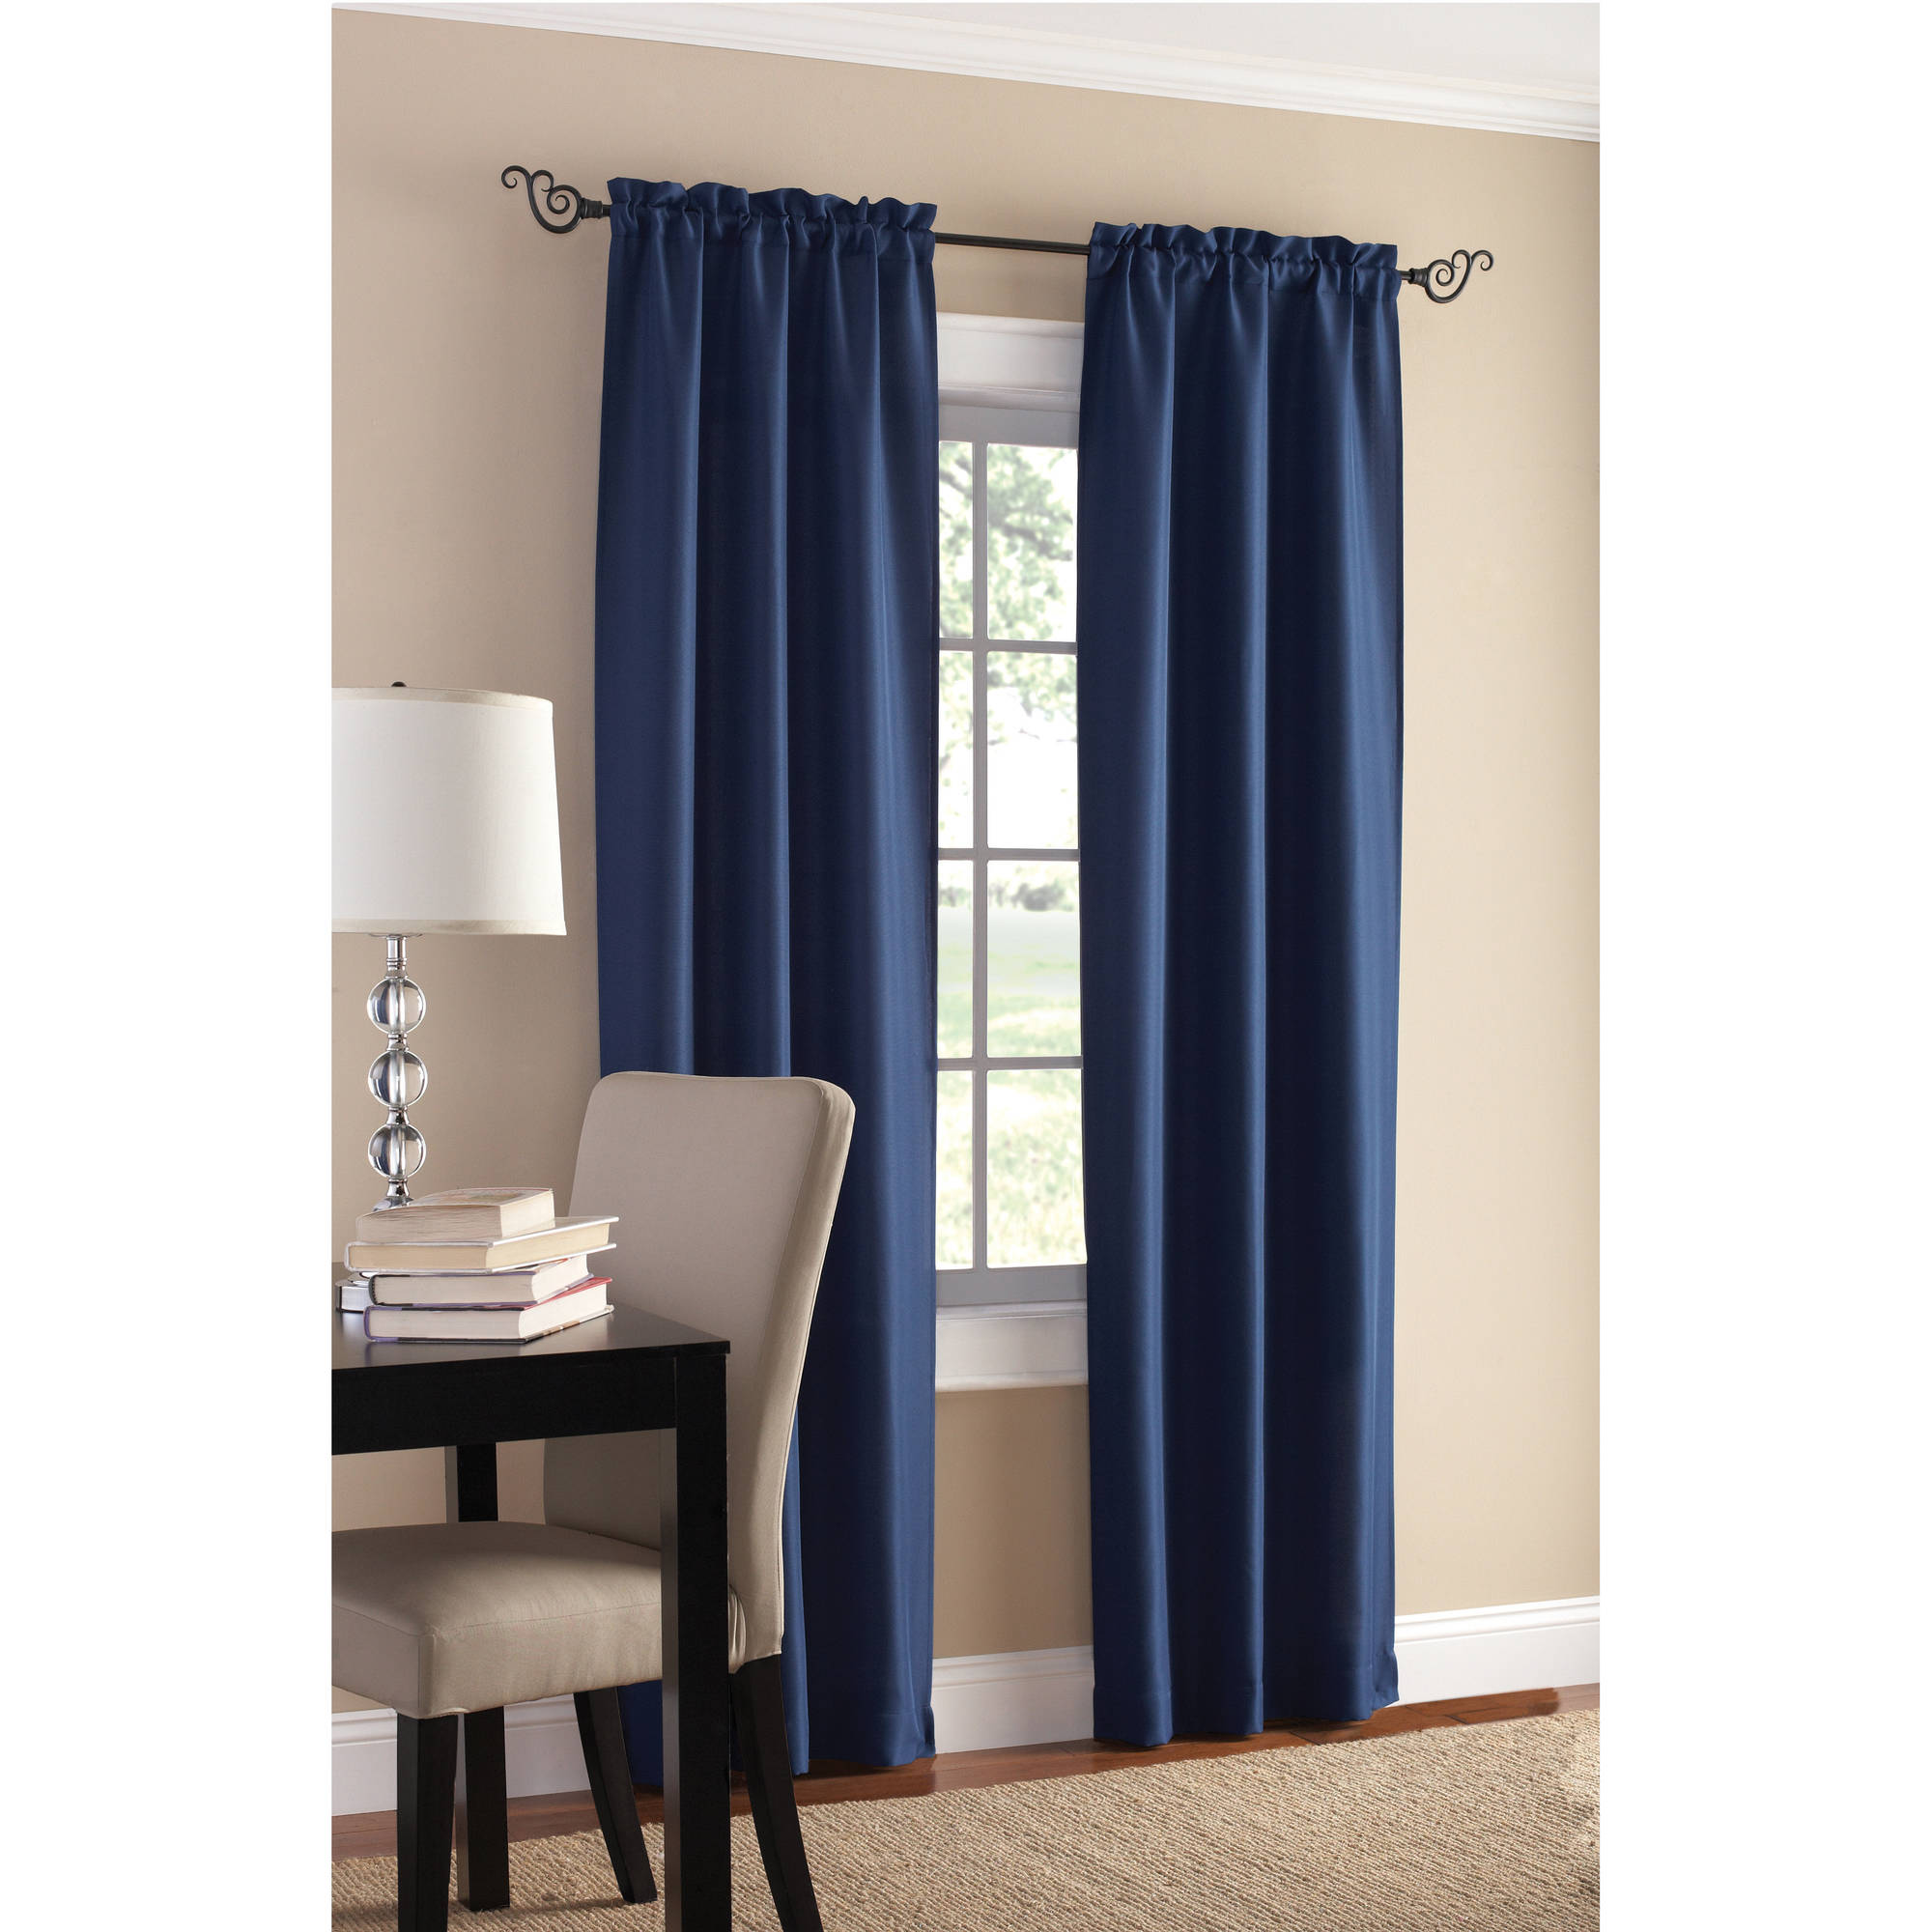 Walmart Curtains For Living Room Interesting Mainstays Sailcloth Curtain Panel Set Of 2  Walmart Design Inspiration